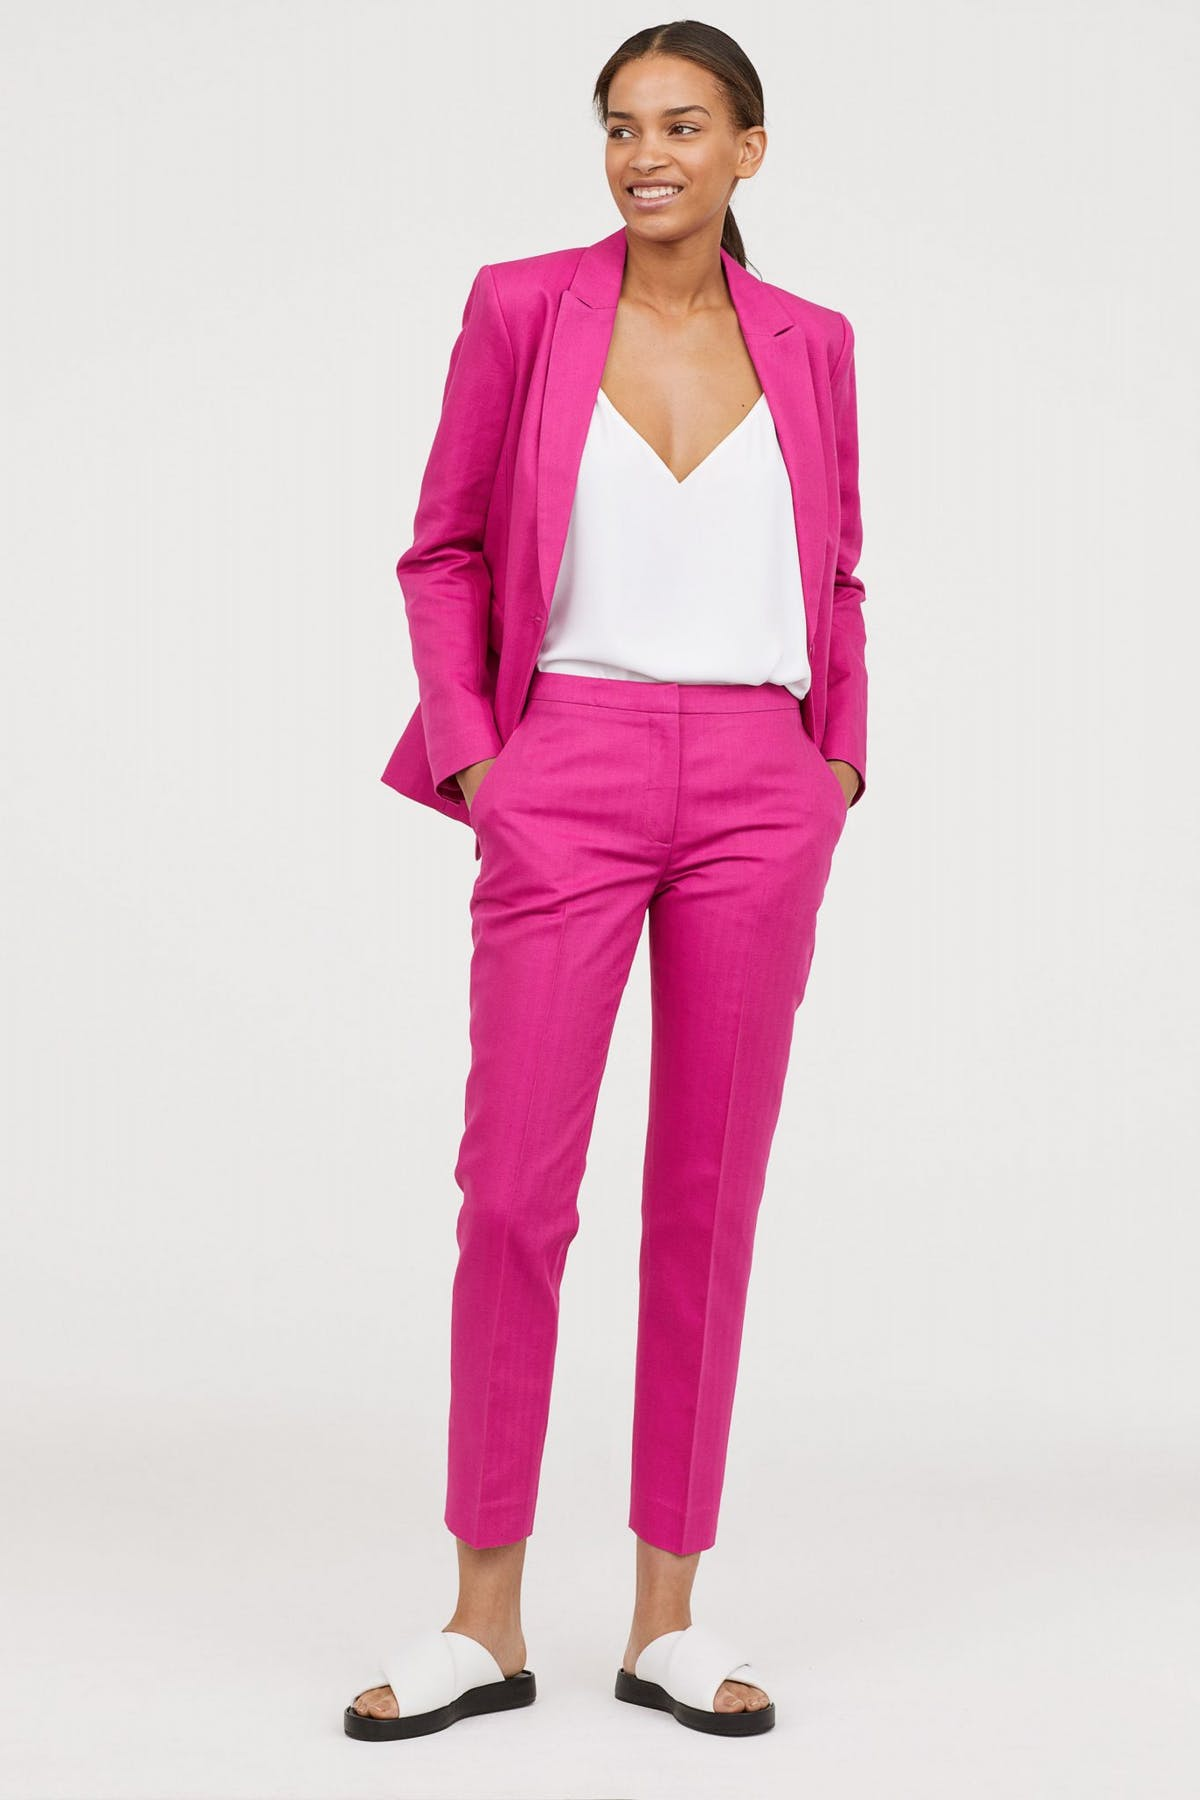 Best Women S Suits Trouser Suits Pants Suits For Women